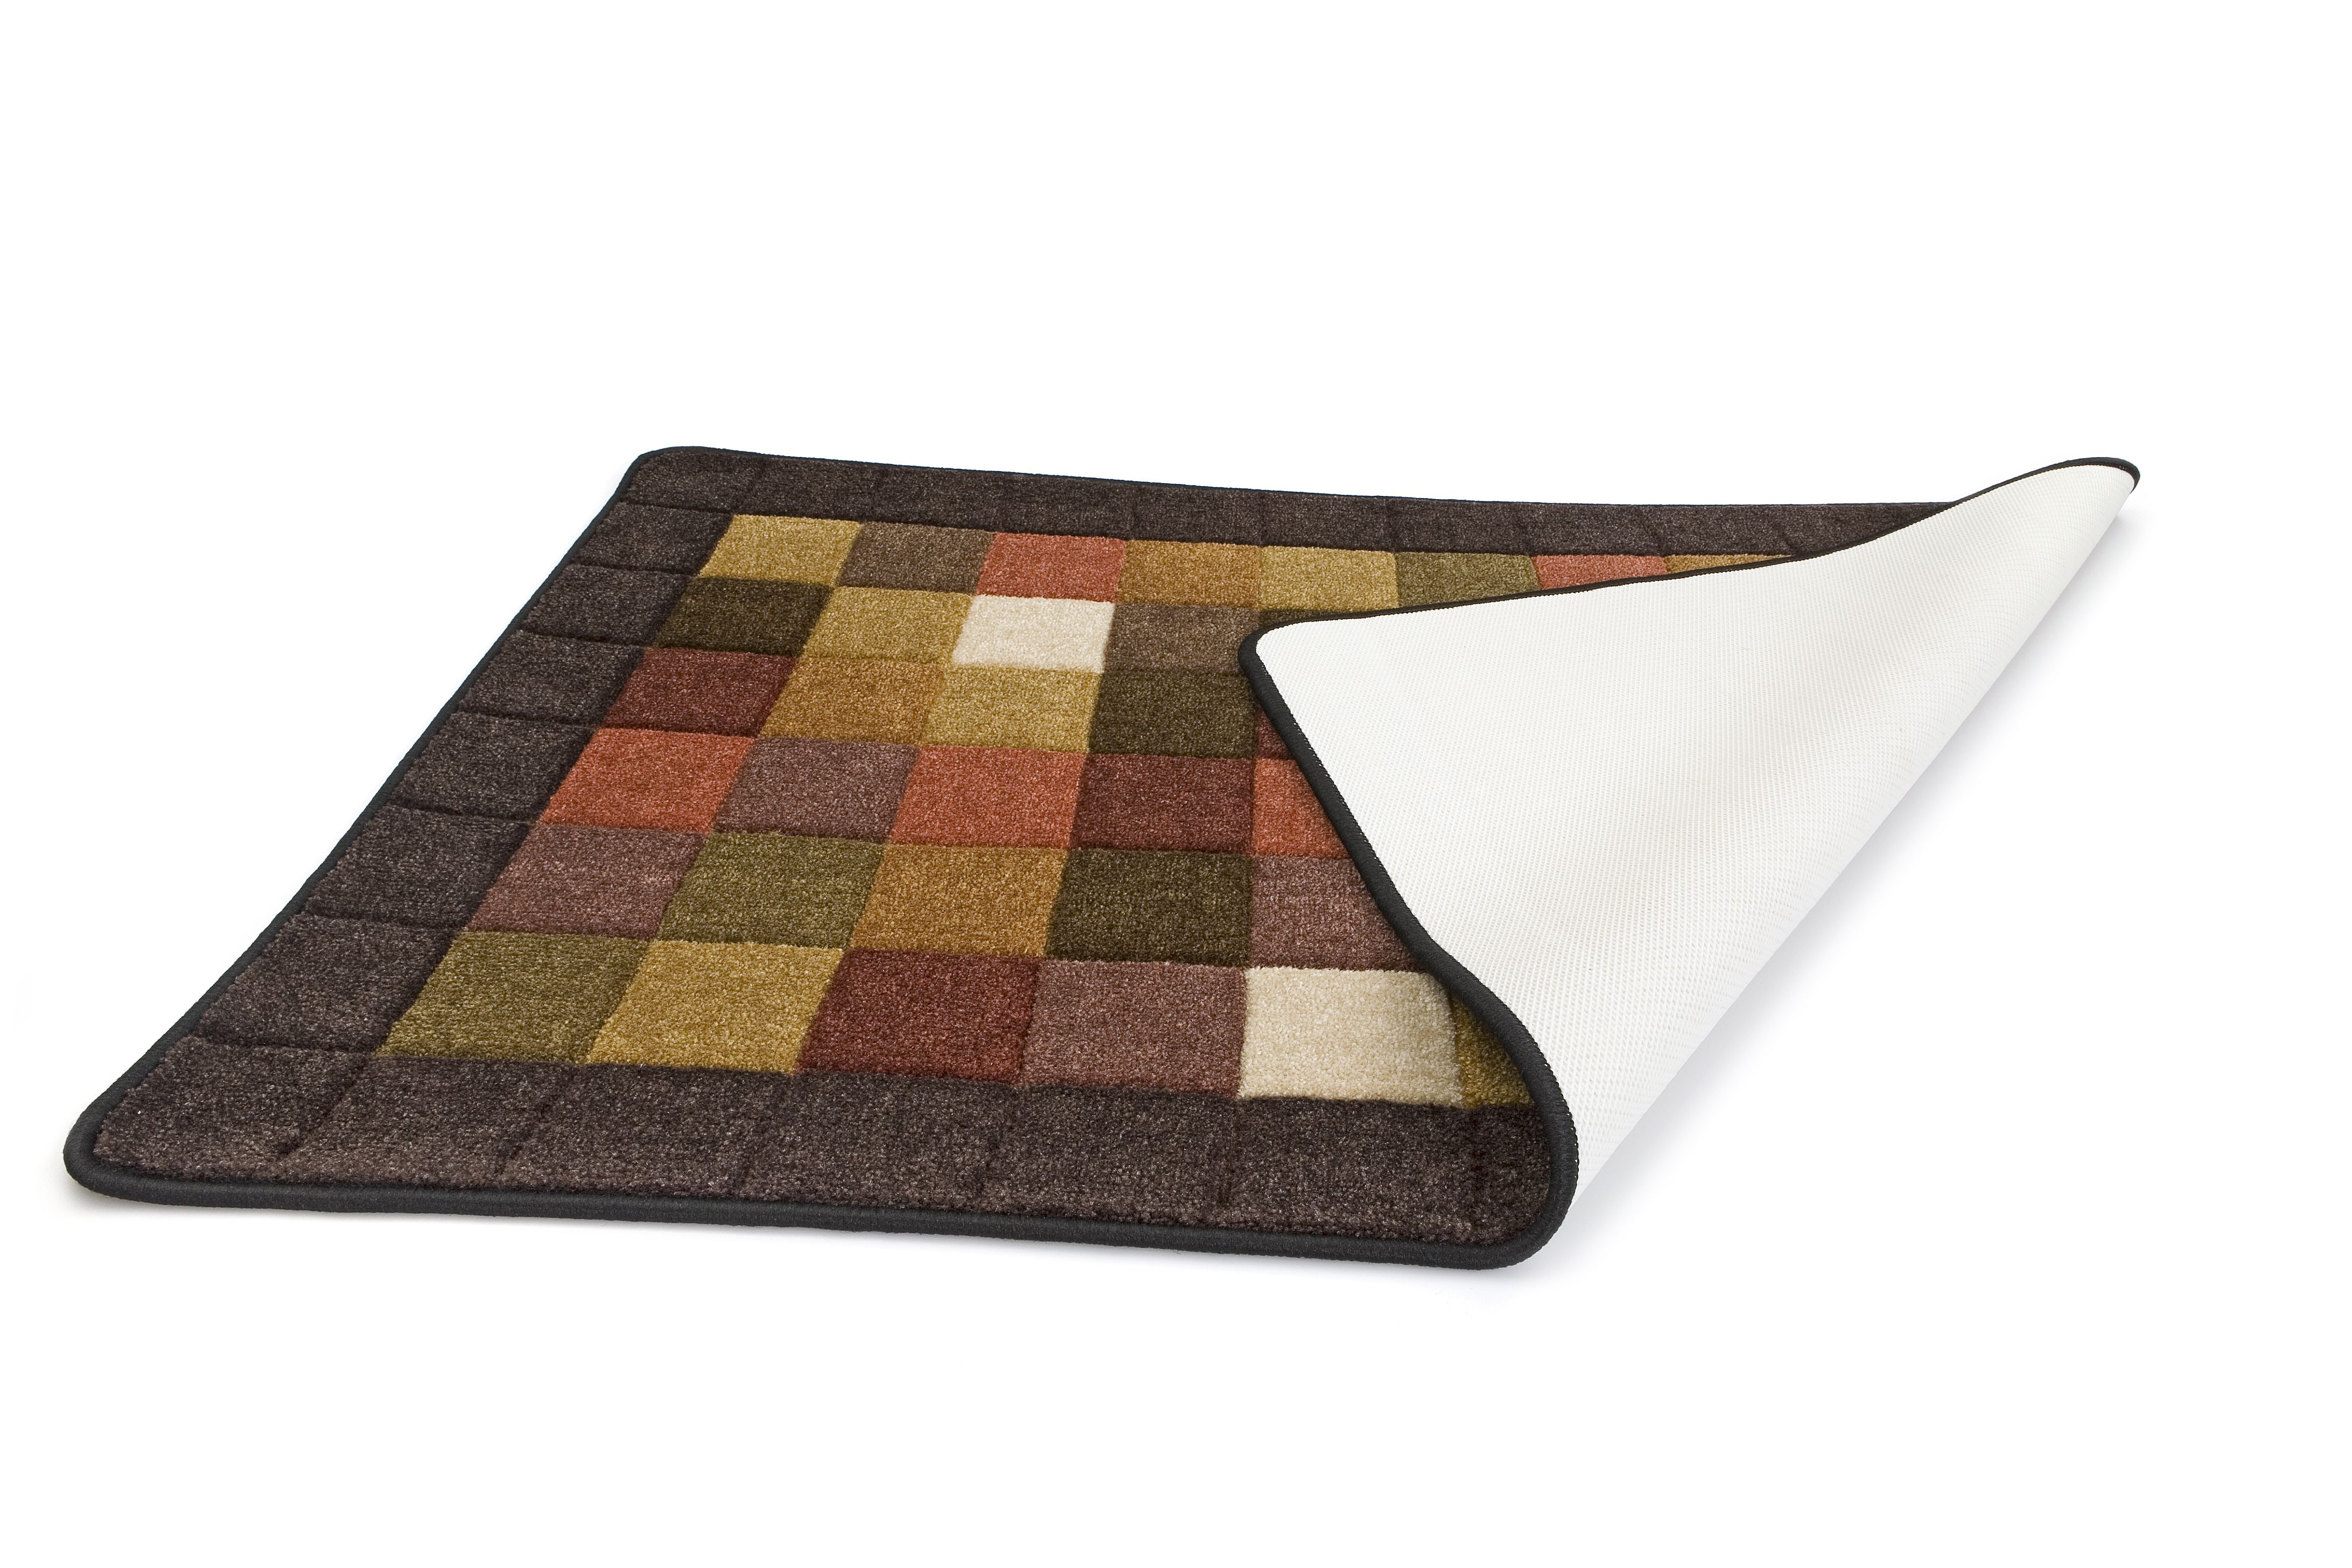 Why You Need a Pad Under an Area Rug